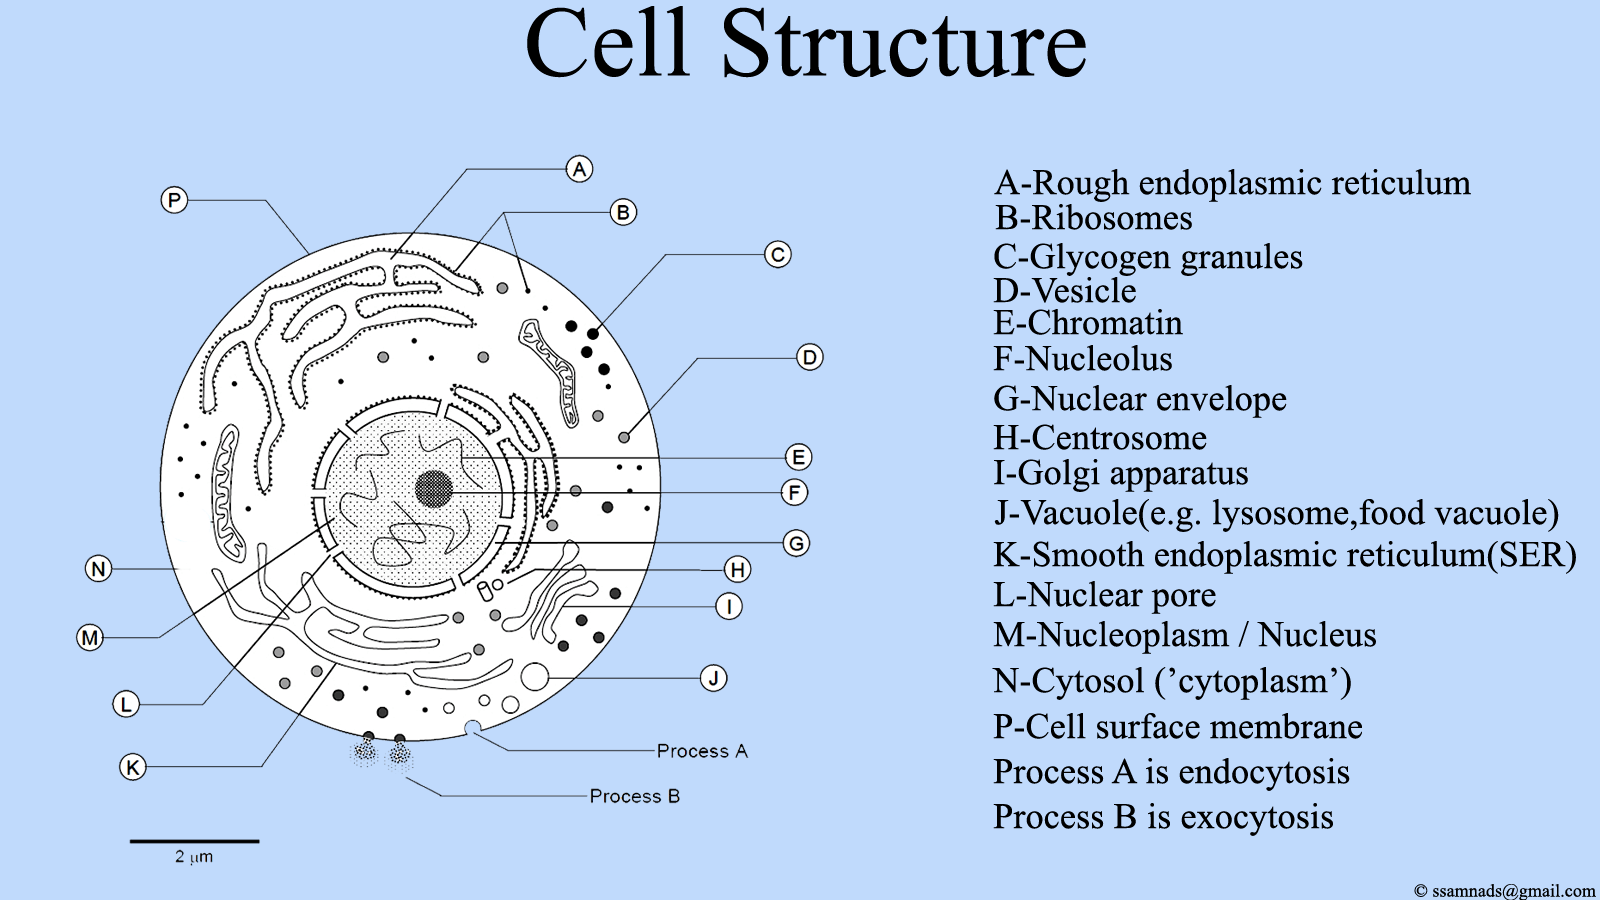 hight resolution of file cell structure cell diagram png wikimedia commons file cell structure cell diagram png